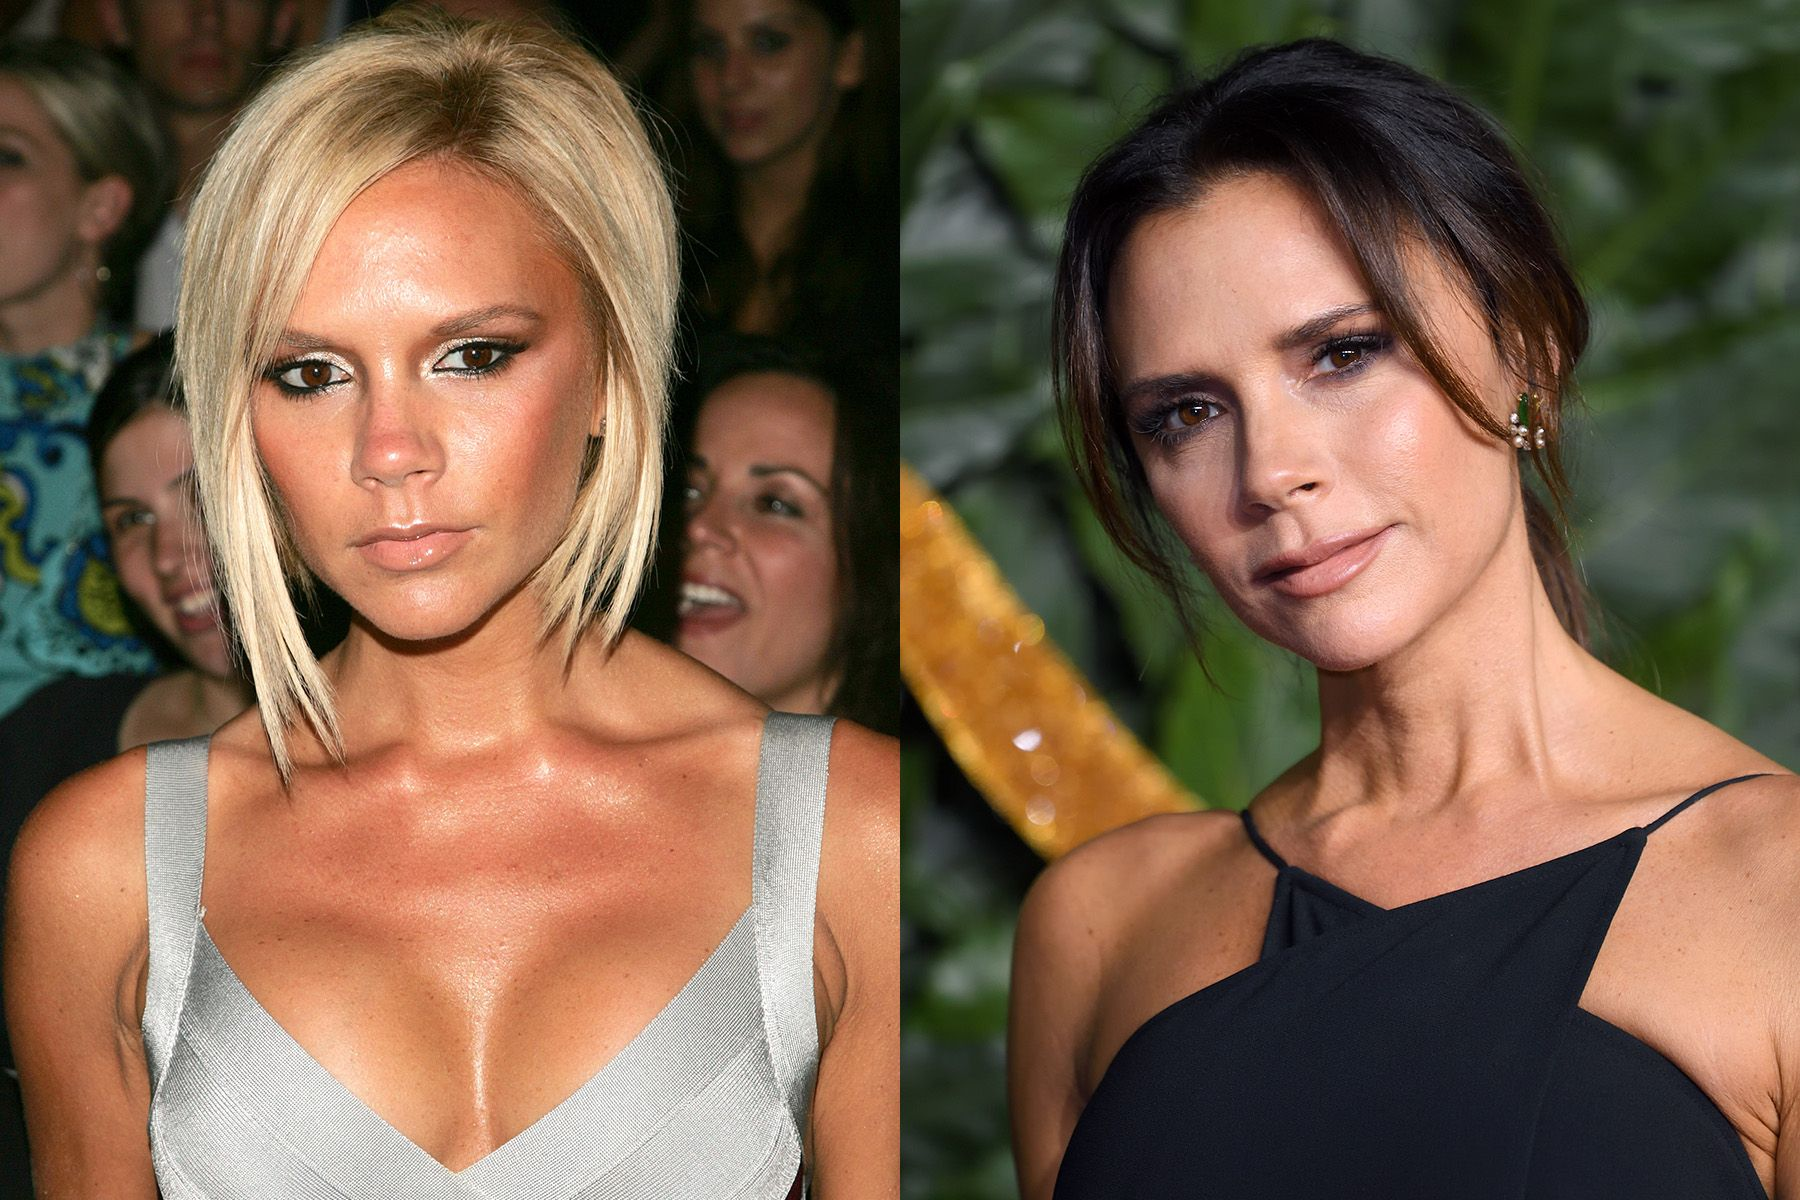 Victoria Beckham Given that Victoria's gone from being a Spice Girl to a fashion designer over the course of her career, it's no surprise that her beauty has evolved as well. The mogul has as of late swapped out the blunt bob she rocked for so many years in favor for a chic long style.